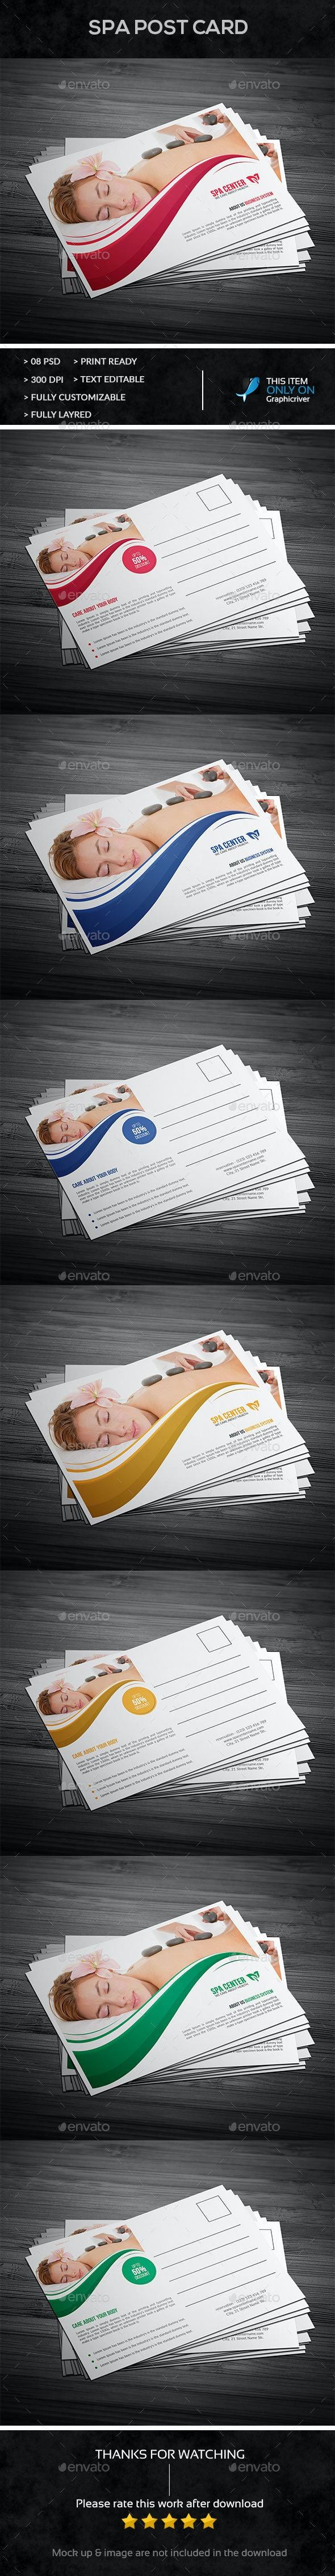 Spa Post Card Design  - Cards & Invites Print Templates